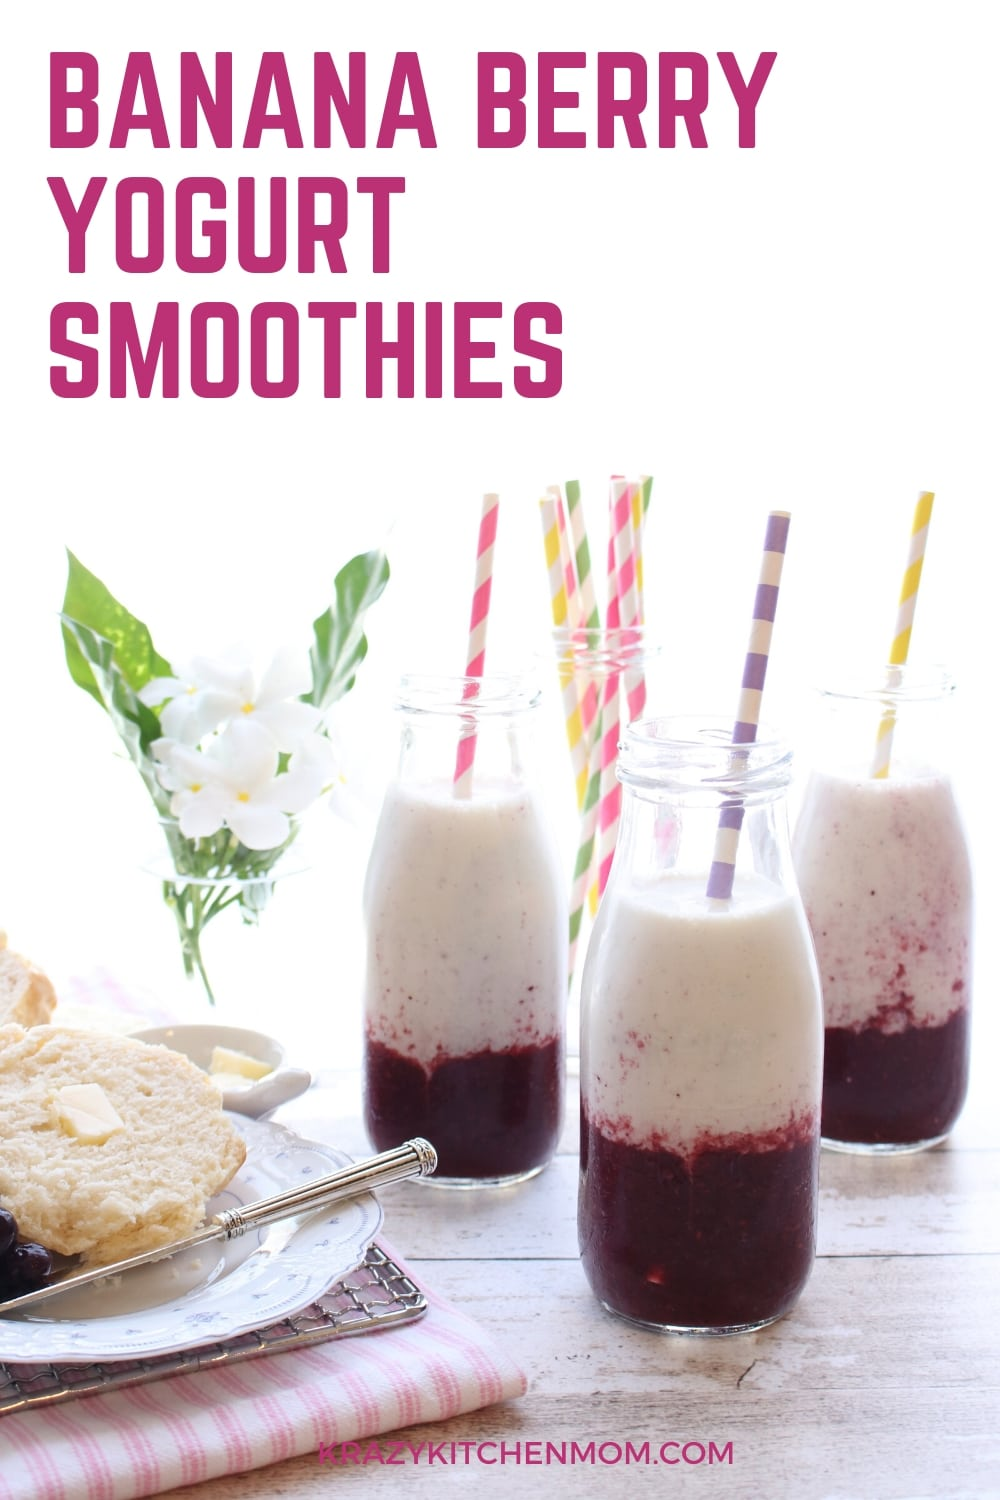 If you like breakfast smoothies, then you will love my Banana Berry Yogurt Smoothies made with Greek yogurt, almond milk, berries, bananas, and chia seeds. via @krazykitchenmom